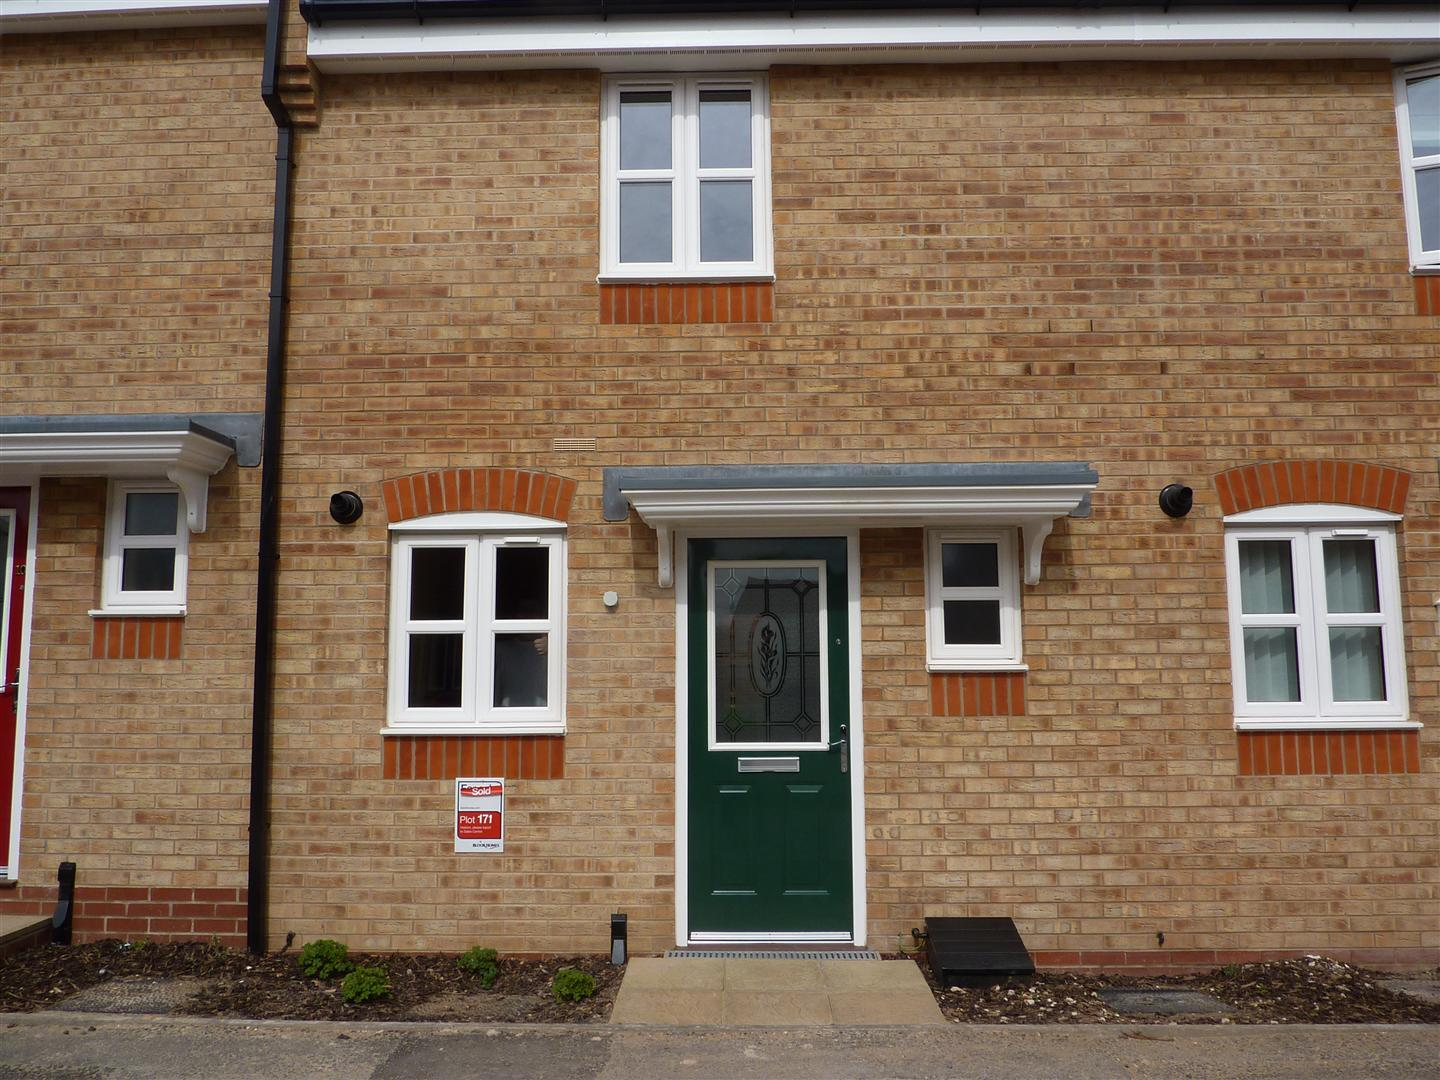 2 Bedroom Town House - Newly Refurbished